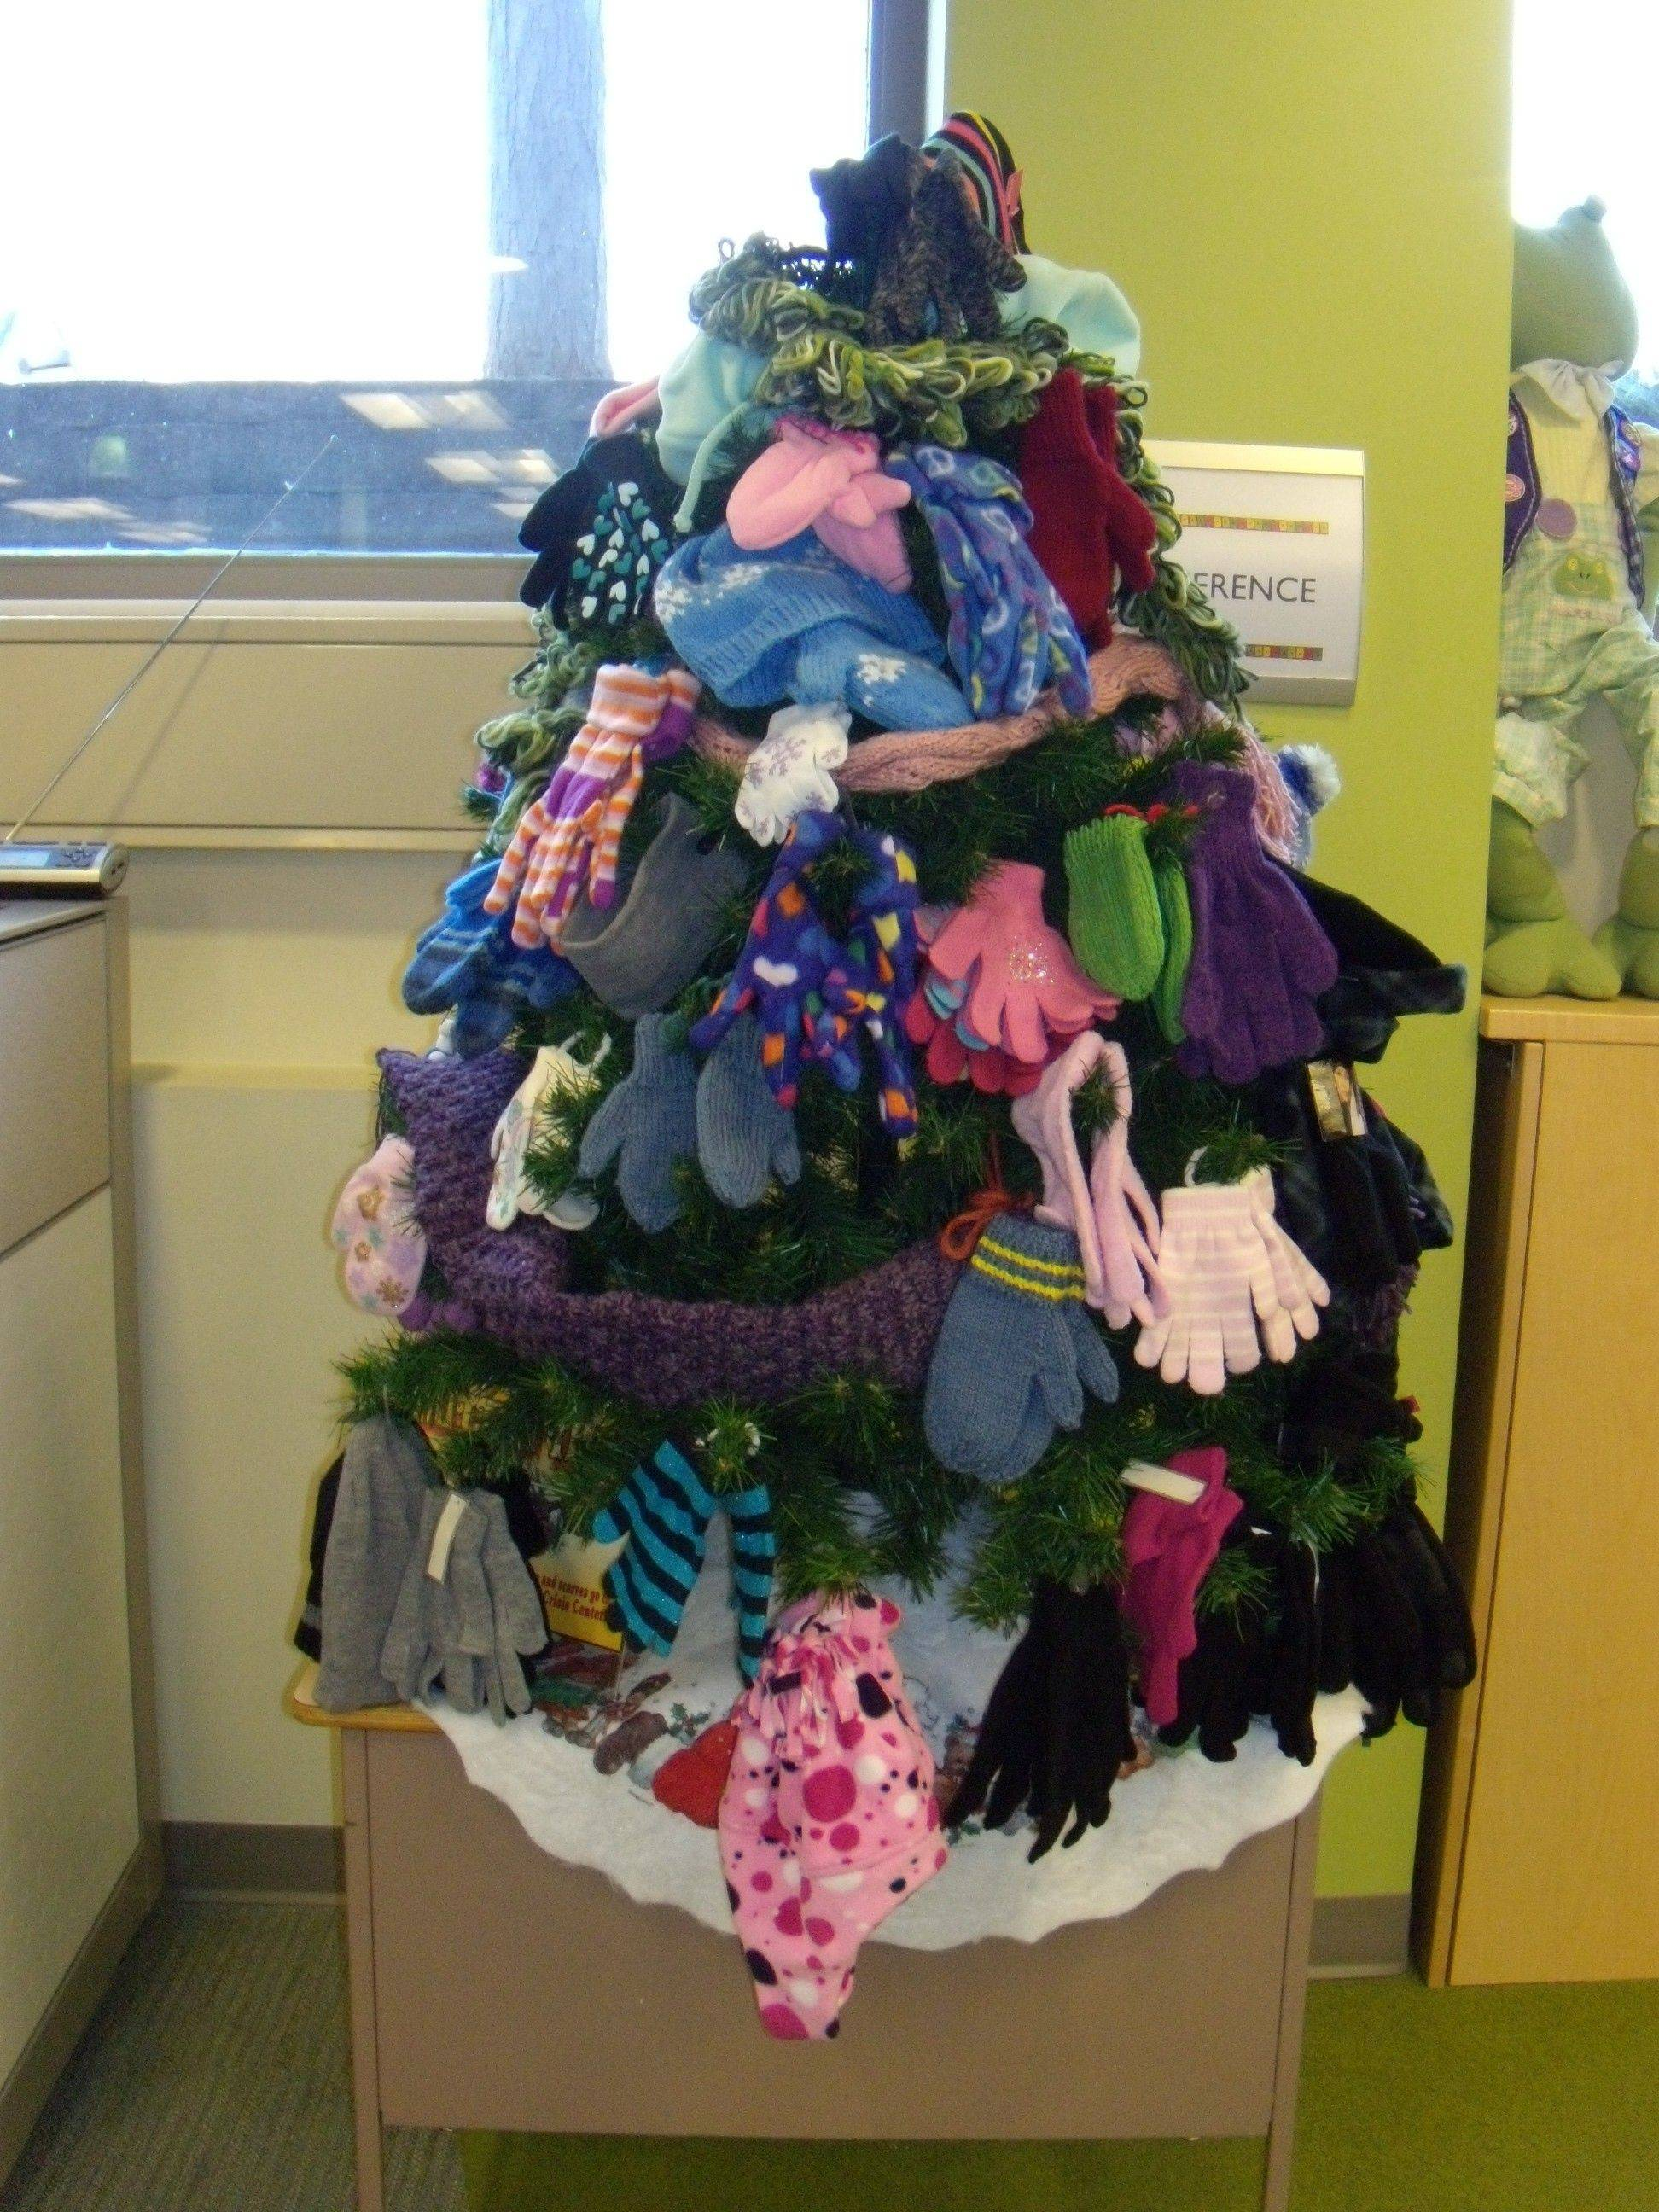 Help the needy to stay warm this winter. Place your donation of winter hats, gloves or accessories on the mitten tree at the Dundee Township Public Library.